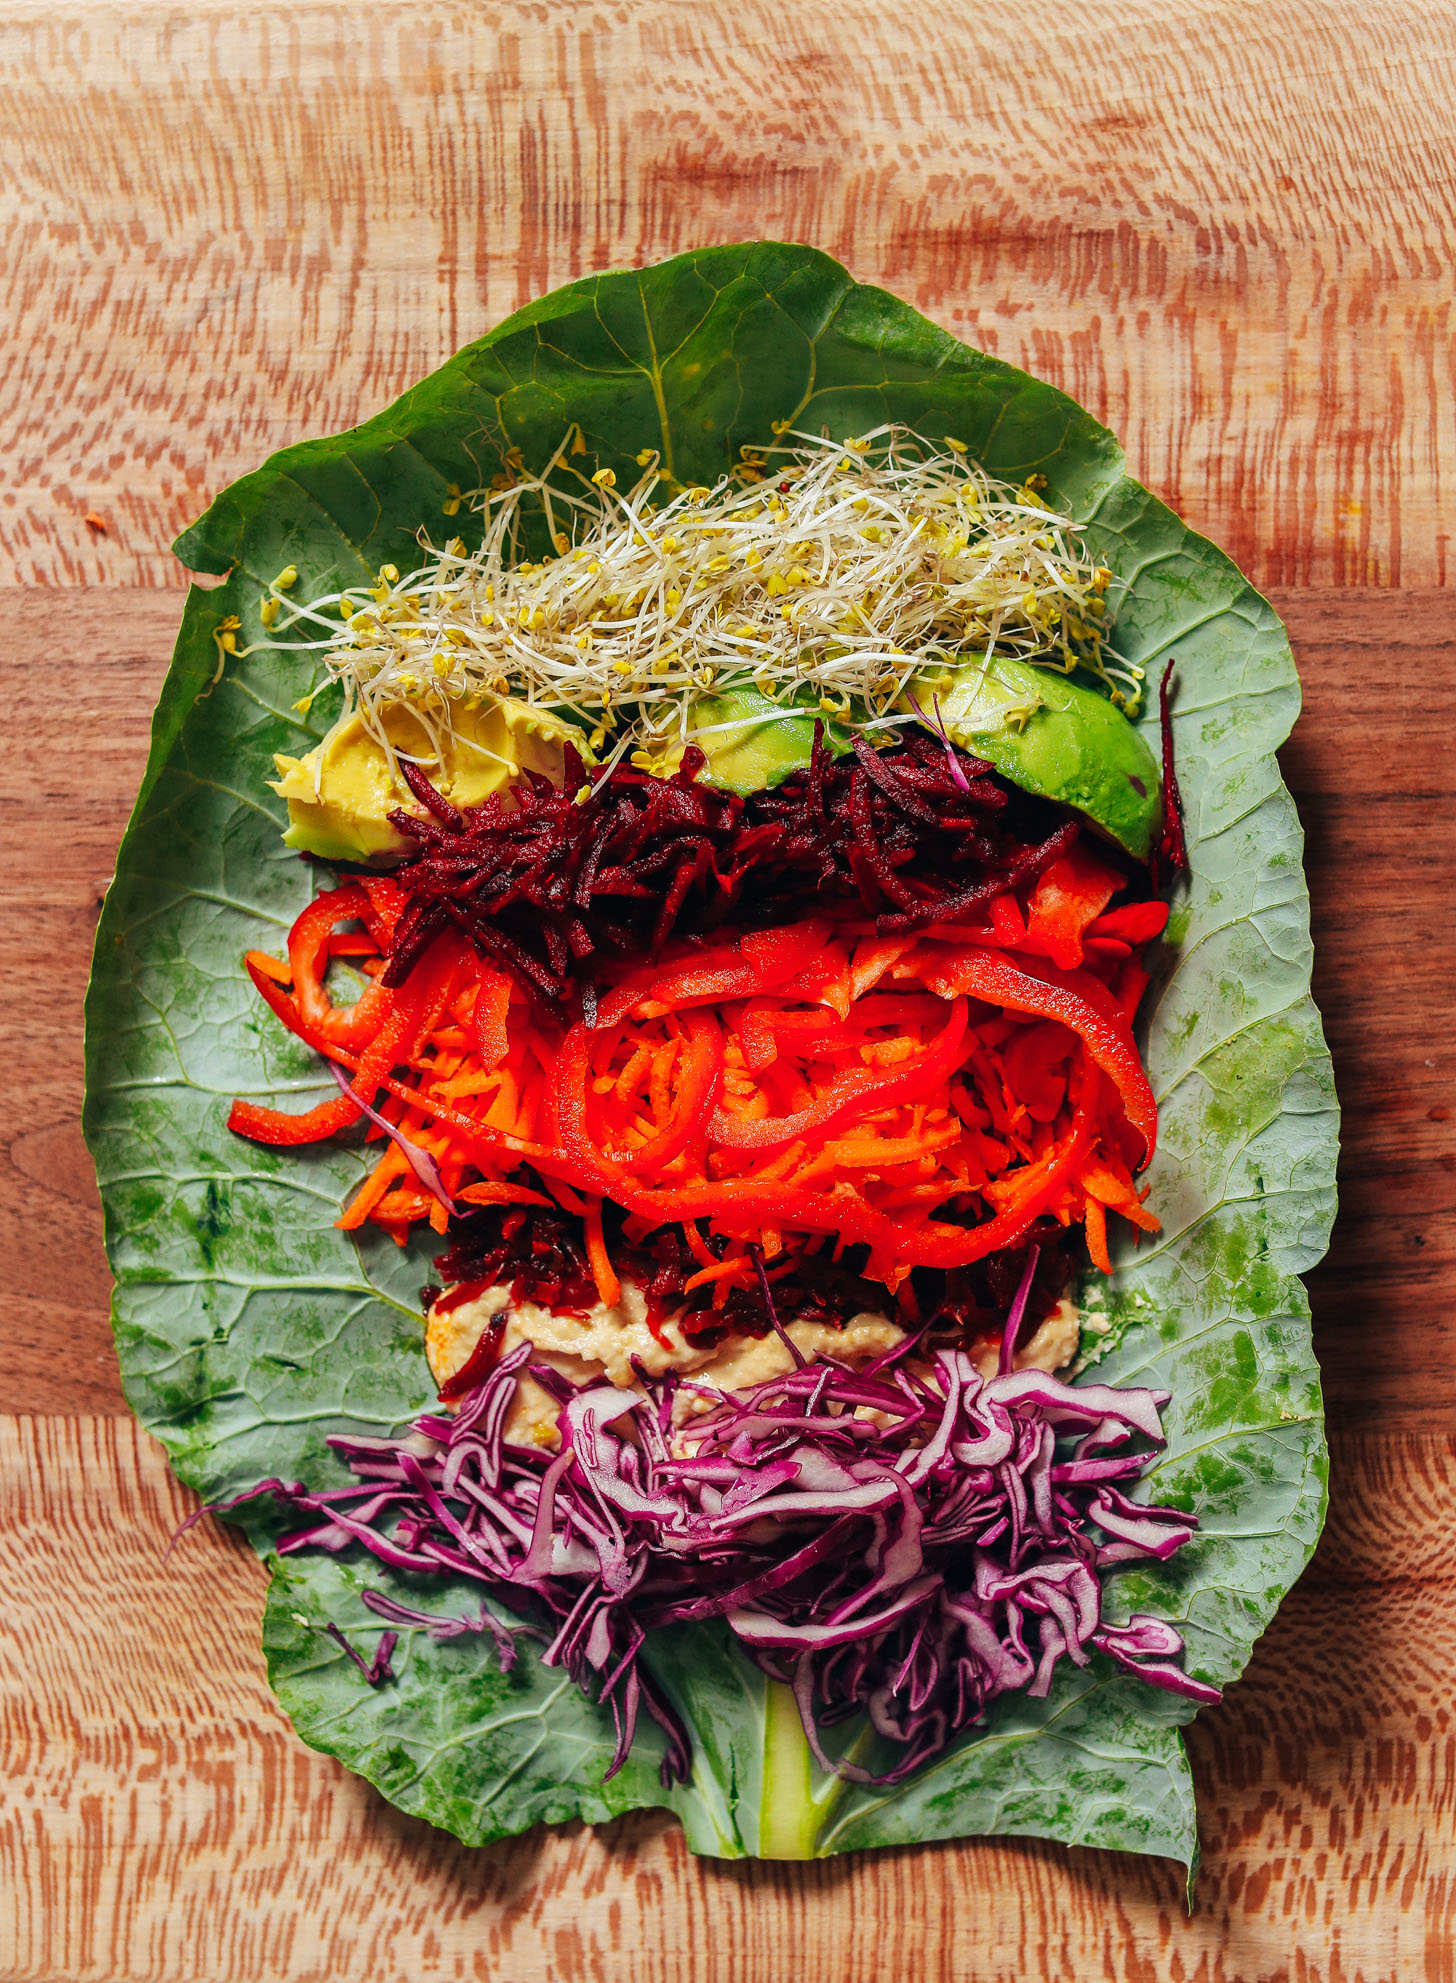 Cutting board with a collard grean leaf topped with broccoli sprouts, avocado, shredded beet, carrot, bell pepper, sauerkraut, hummus, and cabbage